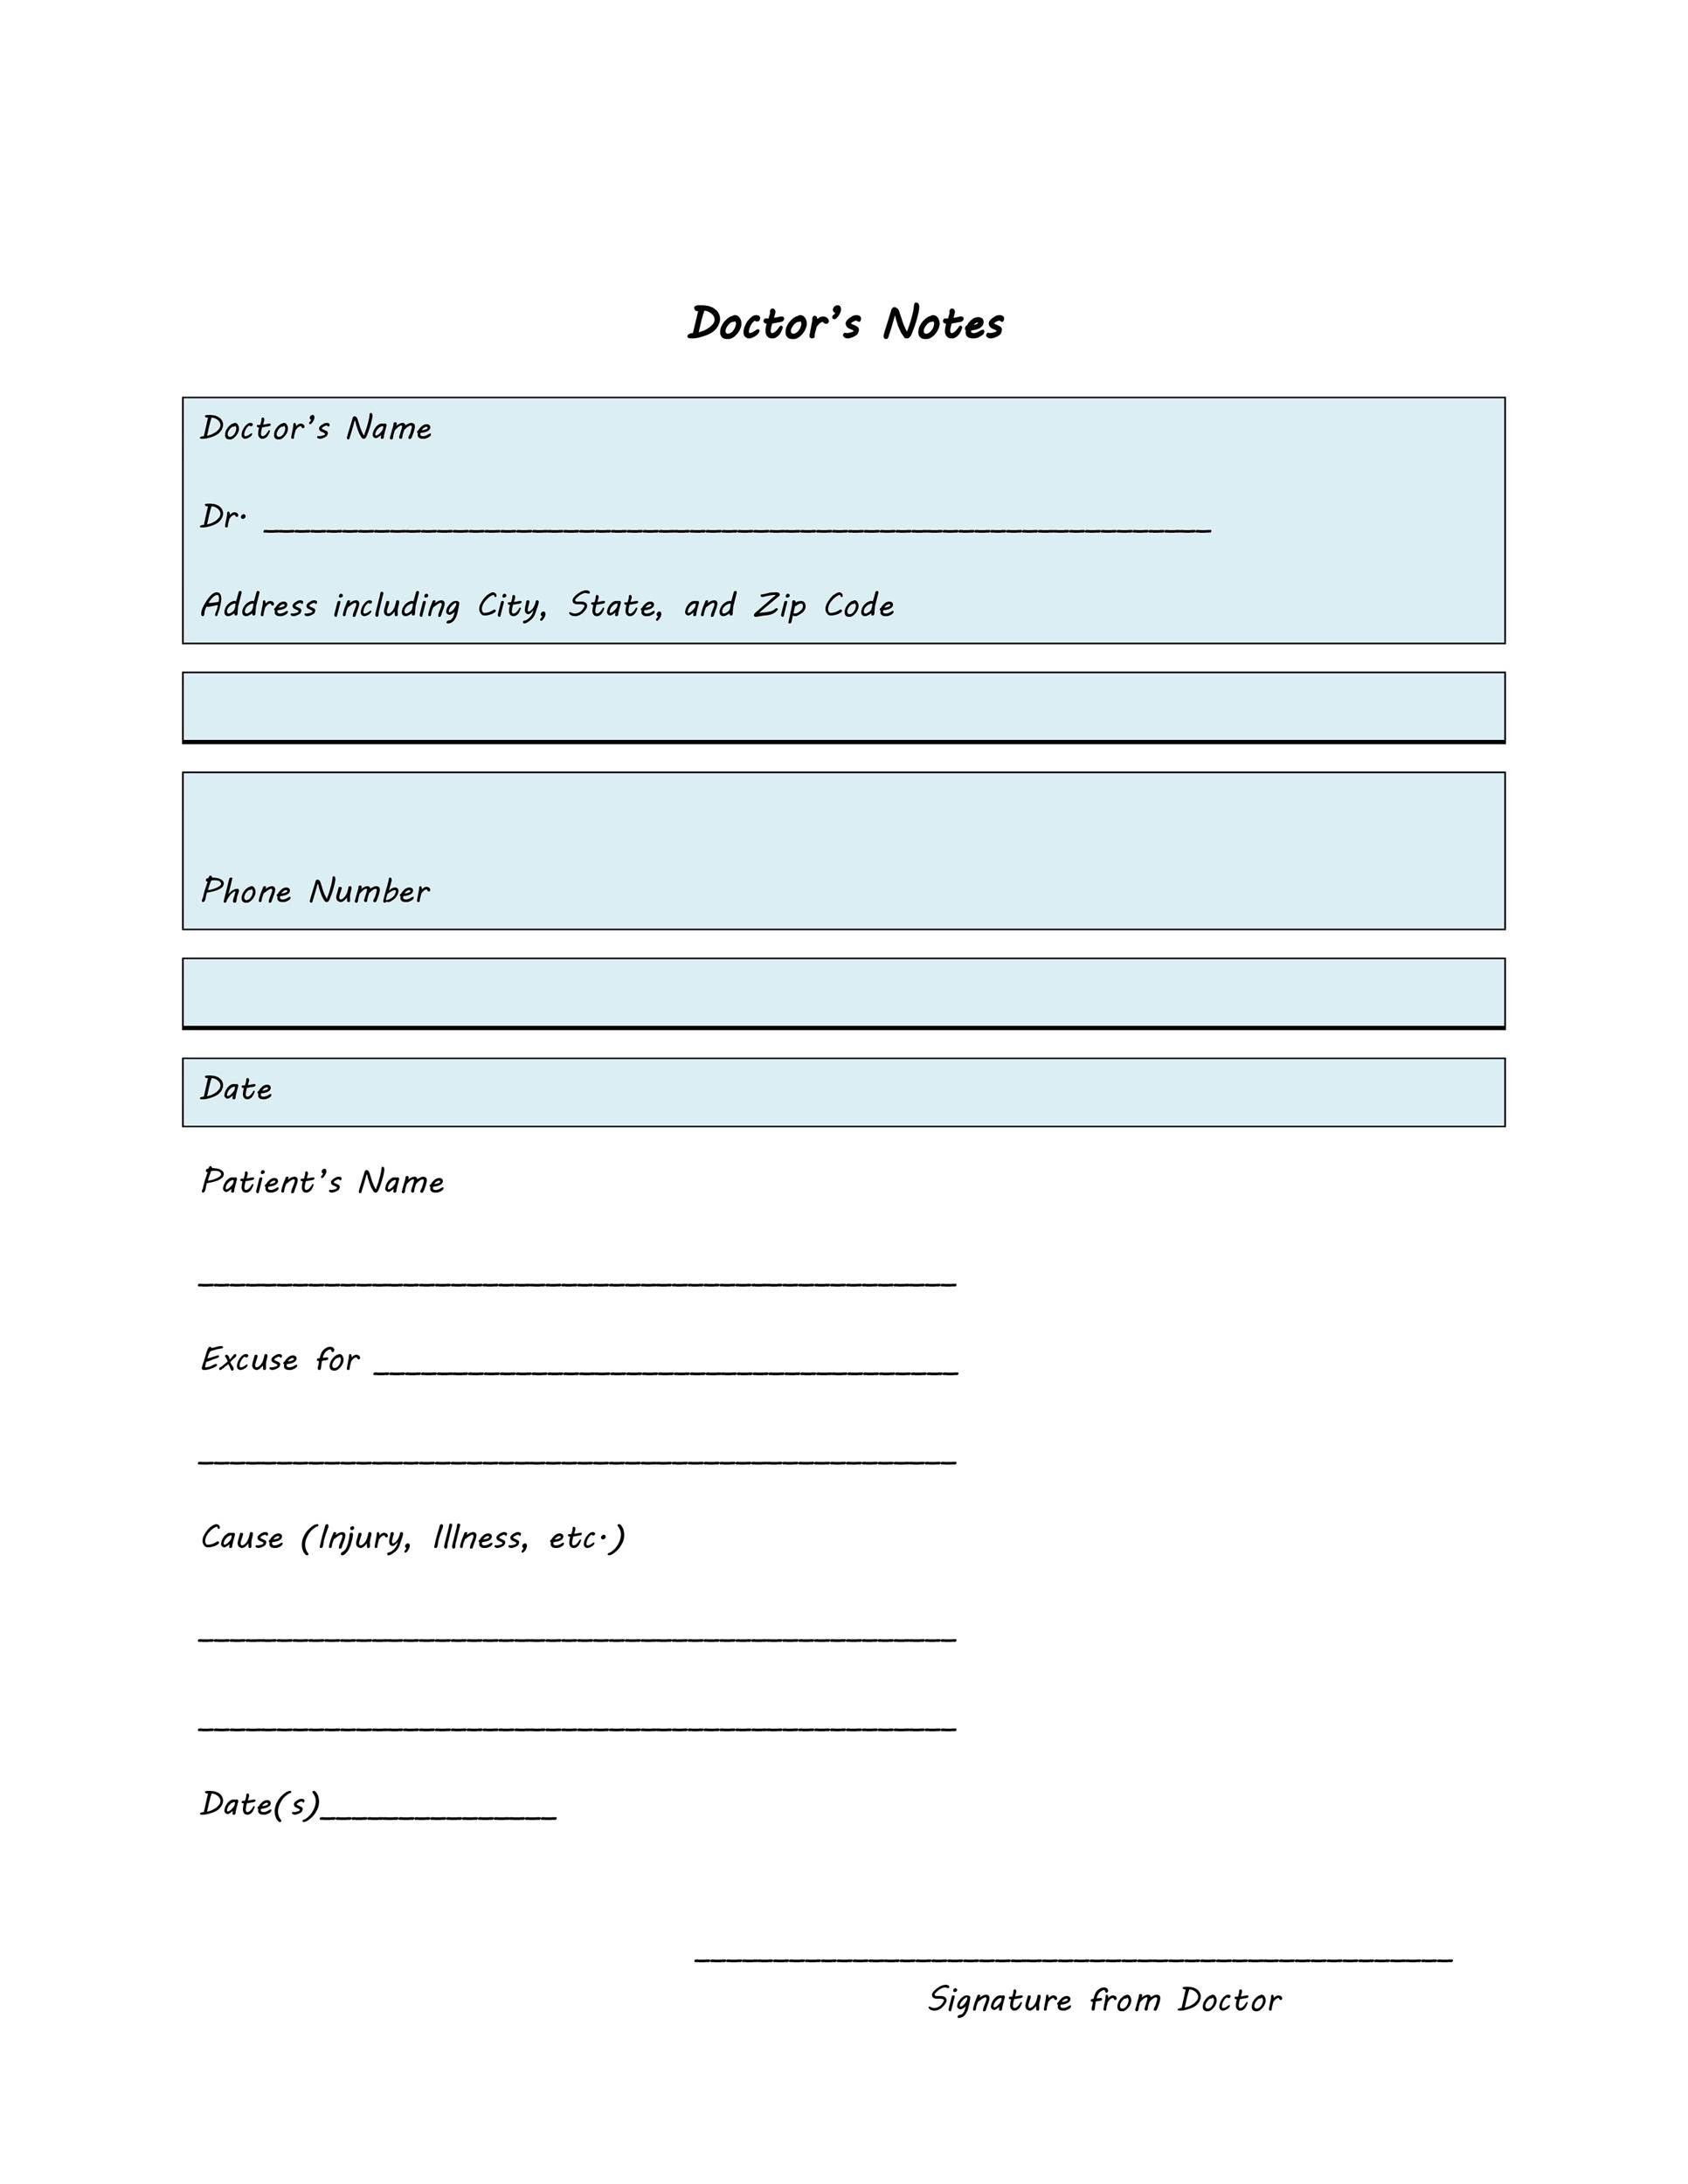 Free Bonus Doctor Notes Template 01